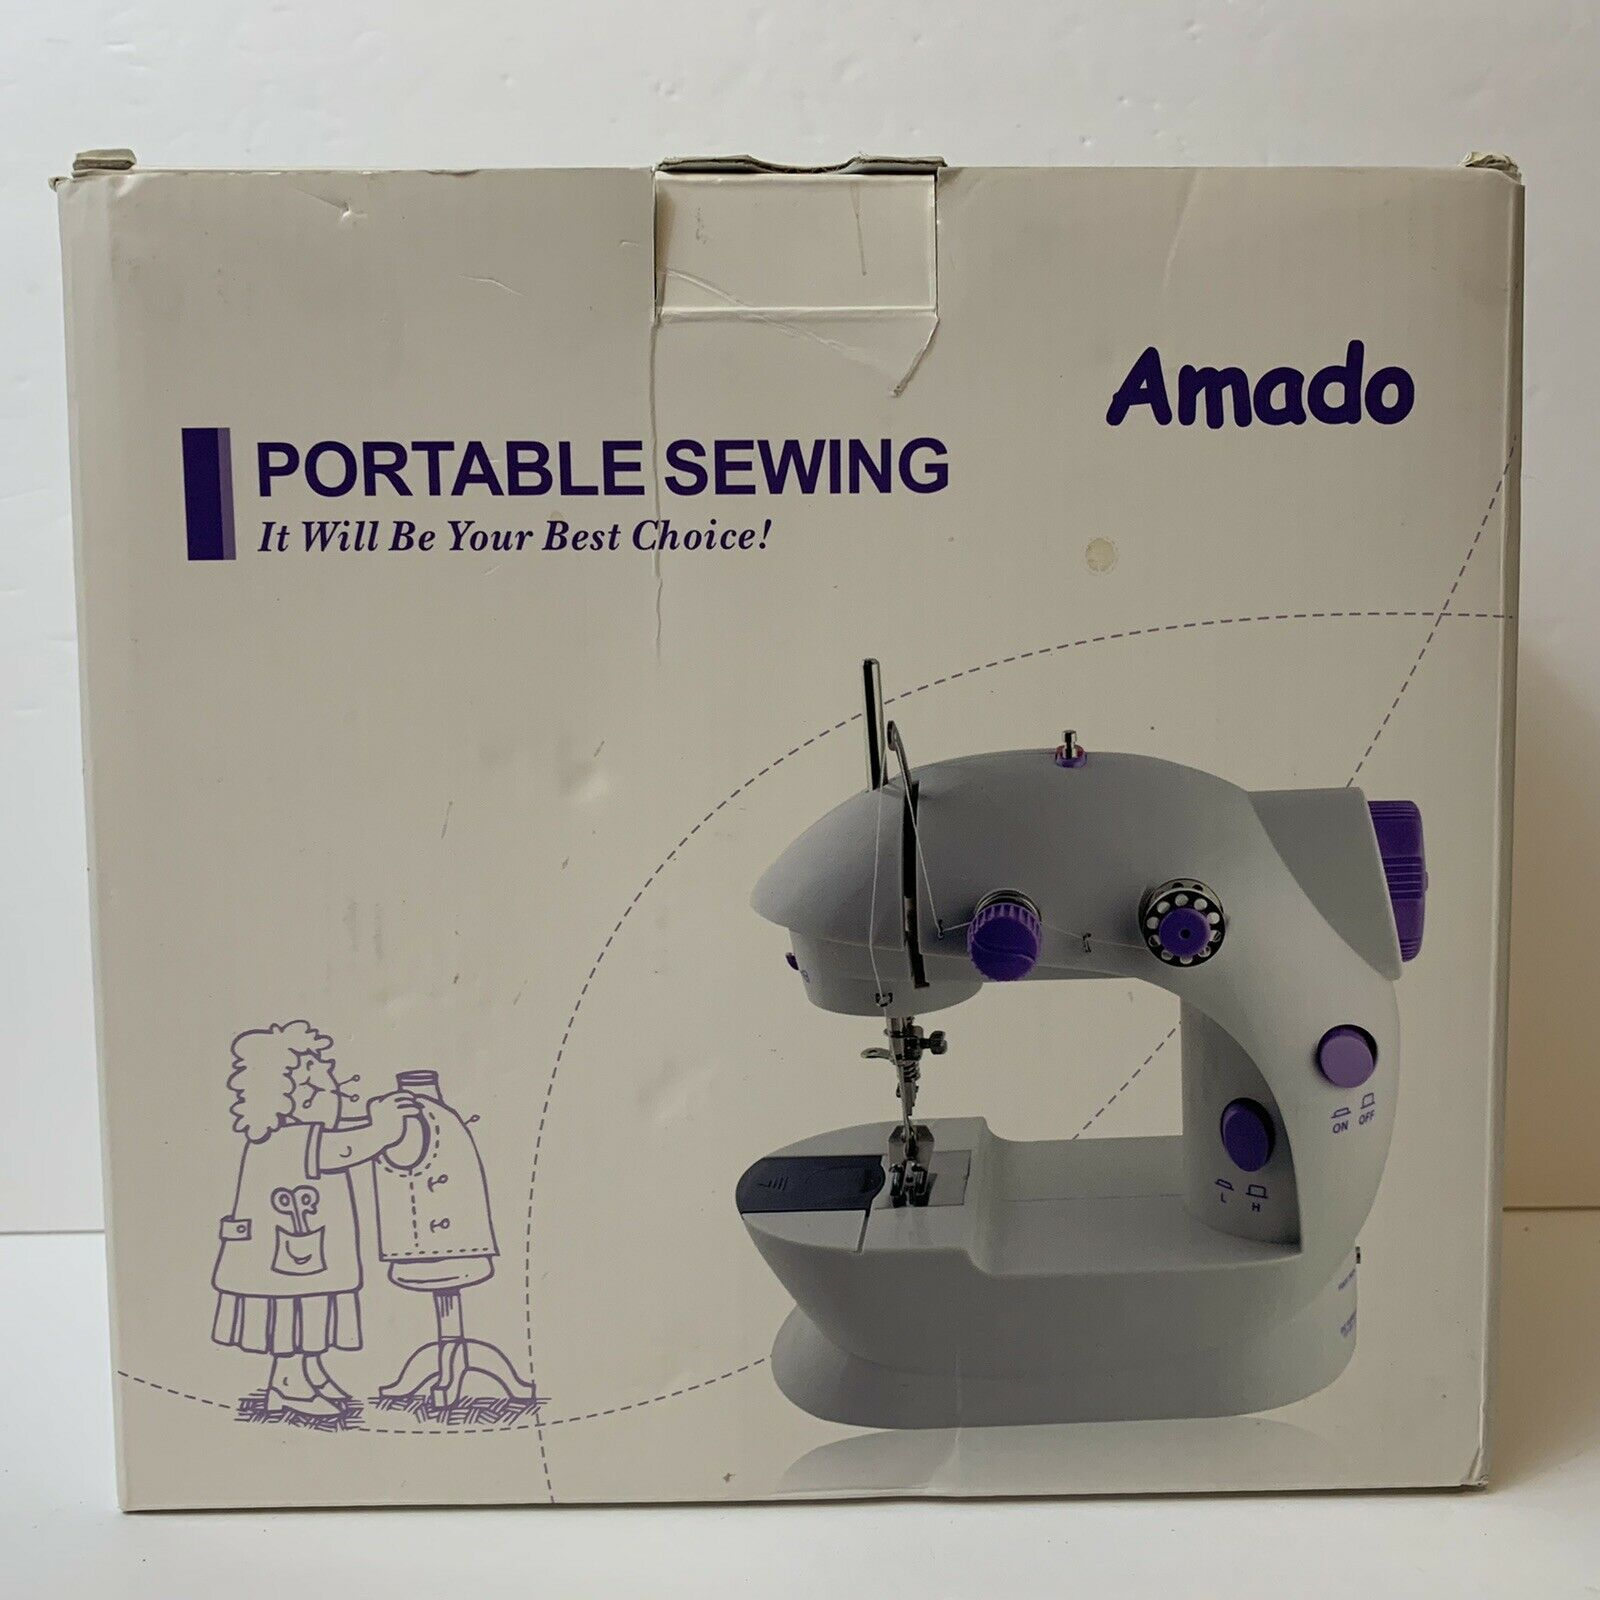 s l1600 - Amado Electric Portable Sewing Machine Desktop Household 2 Speed Foot Pedal